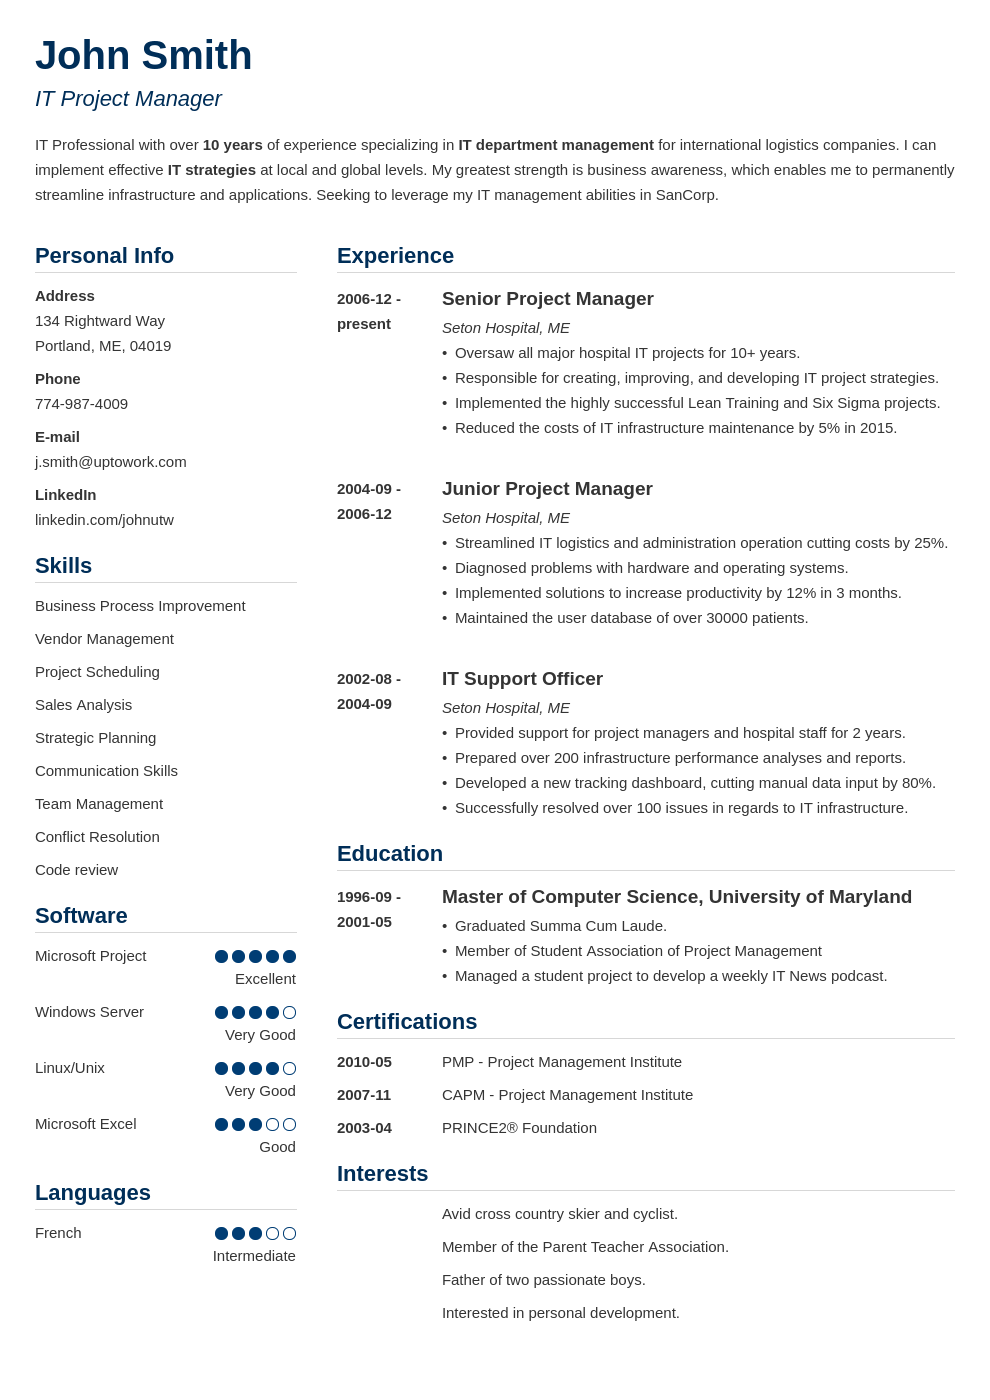 Resume Templates Professional | 20 Resume Templates Download Create Your Resume In 5 Minutes